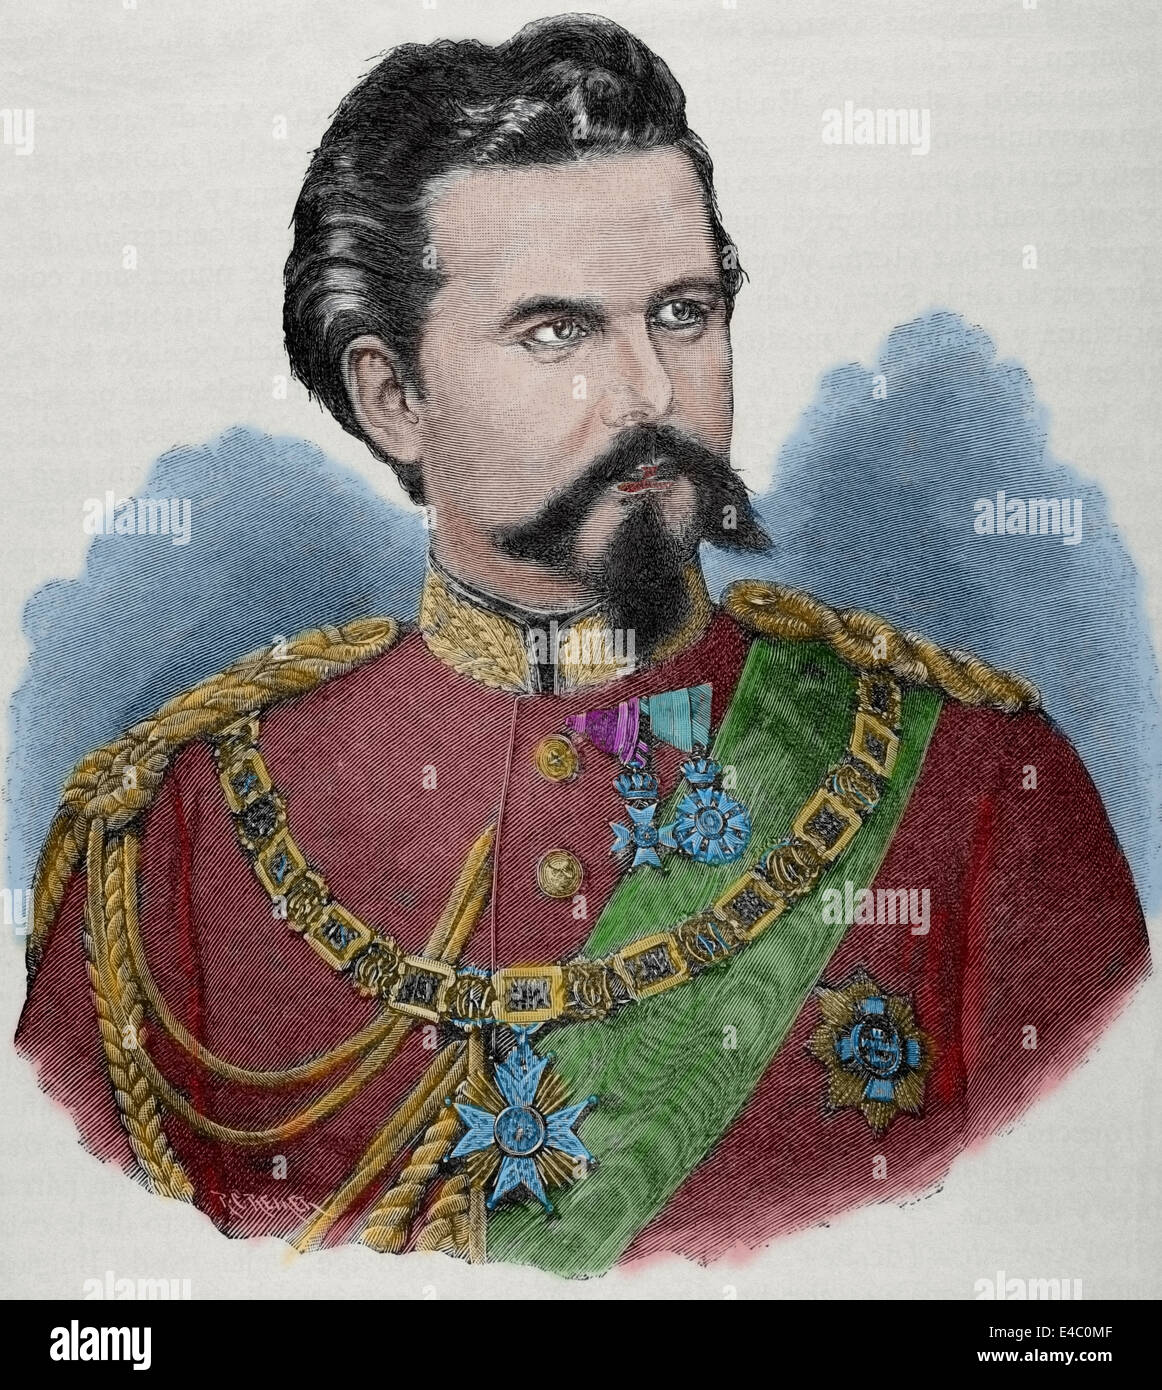 Ludwig II of Bavaria (1845-1886). King of Bavaria from 1864 until his death. Engraving by Rico. Colored. - Stock Image